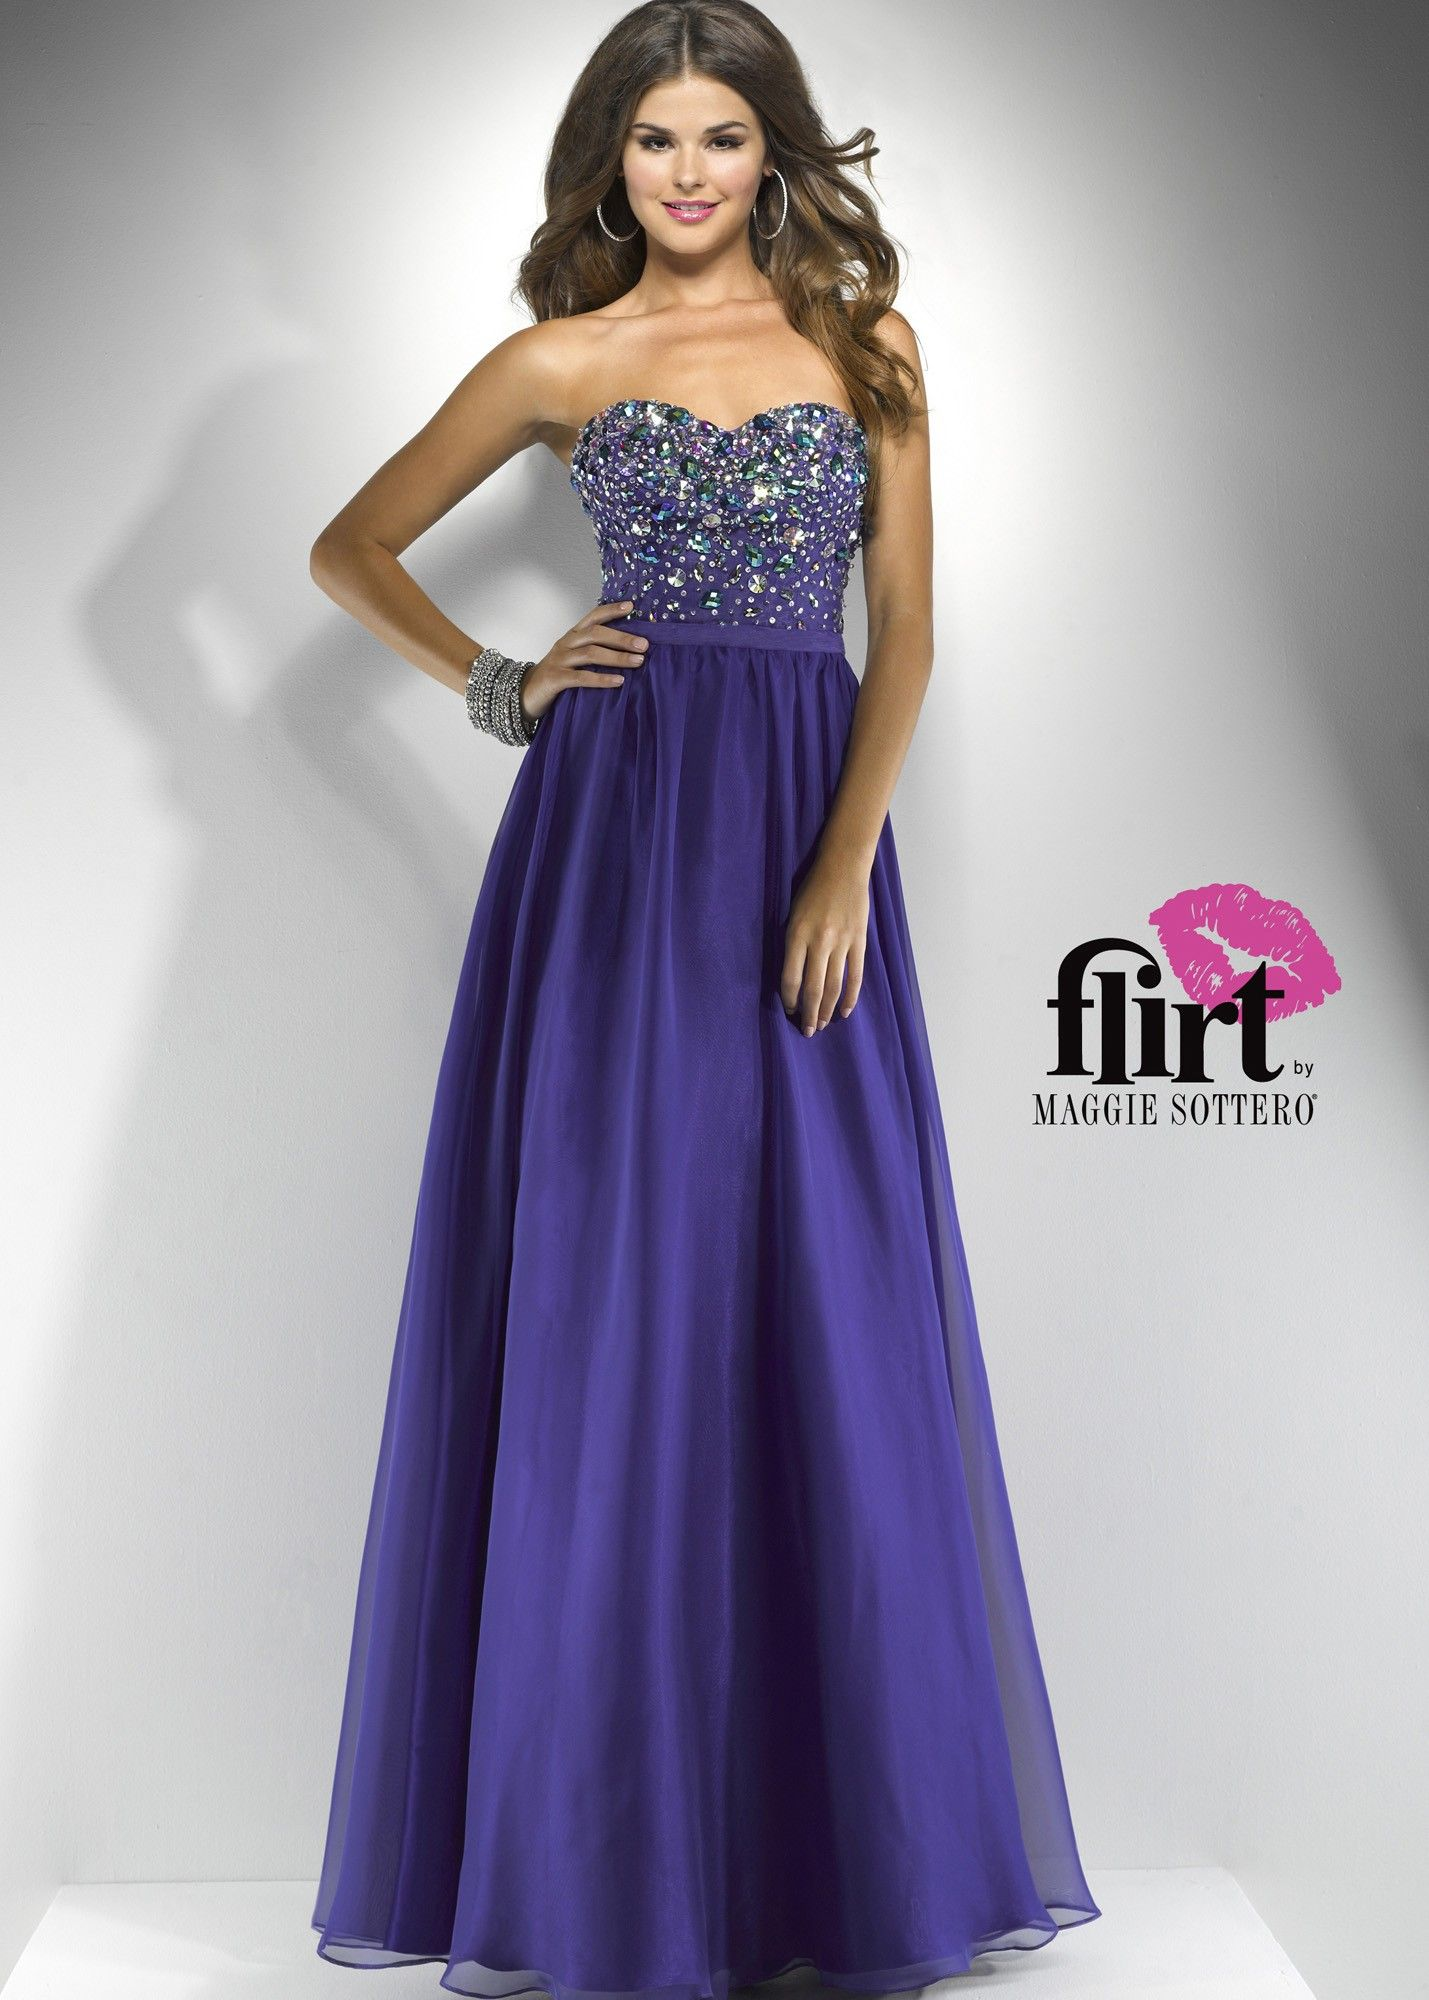 Flirt by maggie sottero p purple chiffon dress wedding ideas